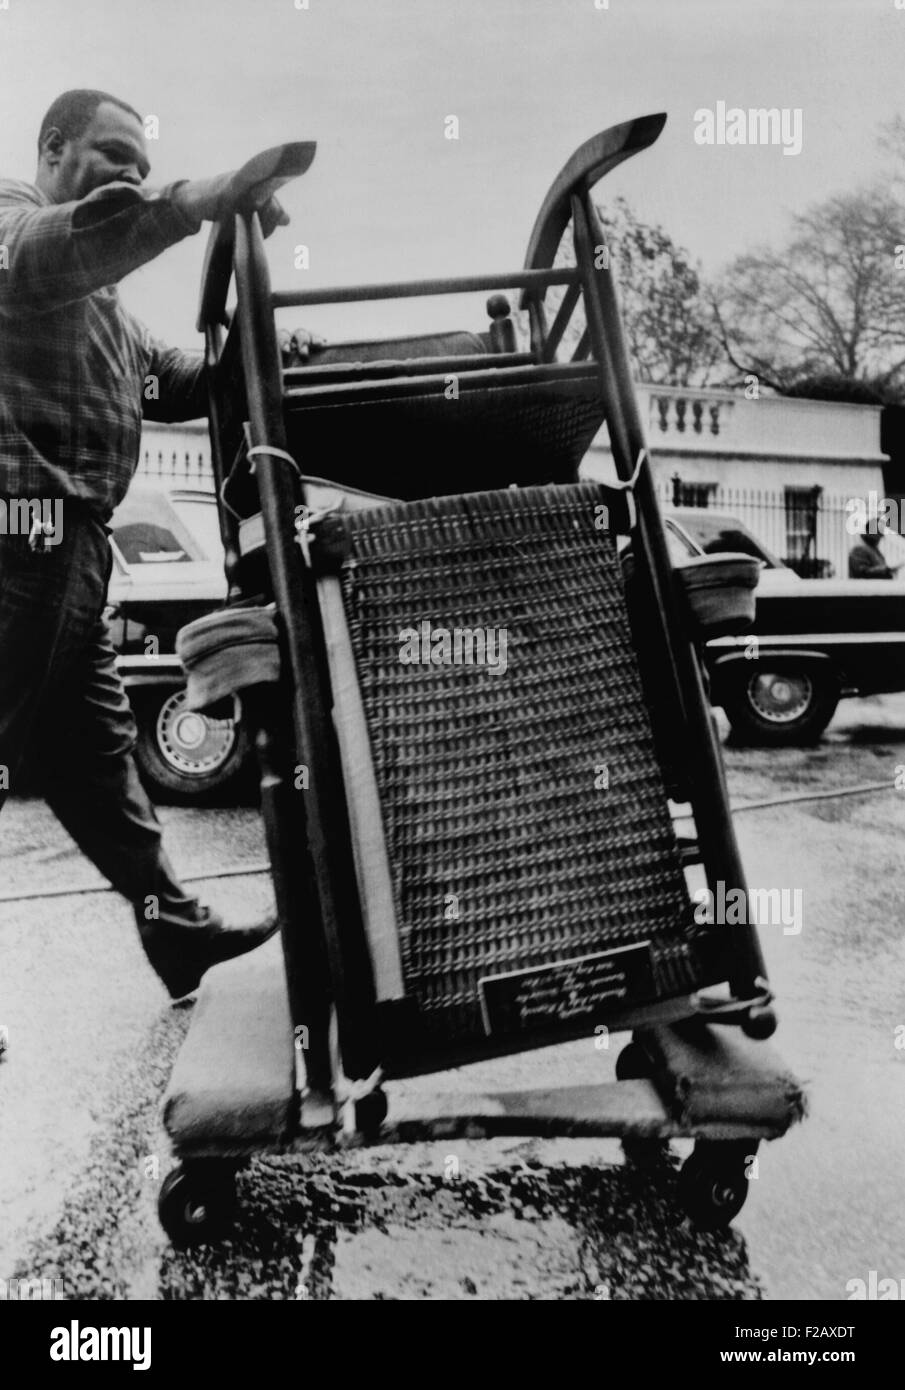 President Kennedy's rocking chair moved from the White House on Nov. 23, 1963. On the day after his assassination, - Stock Image